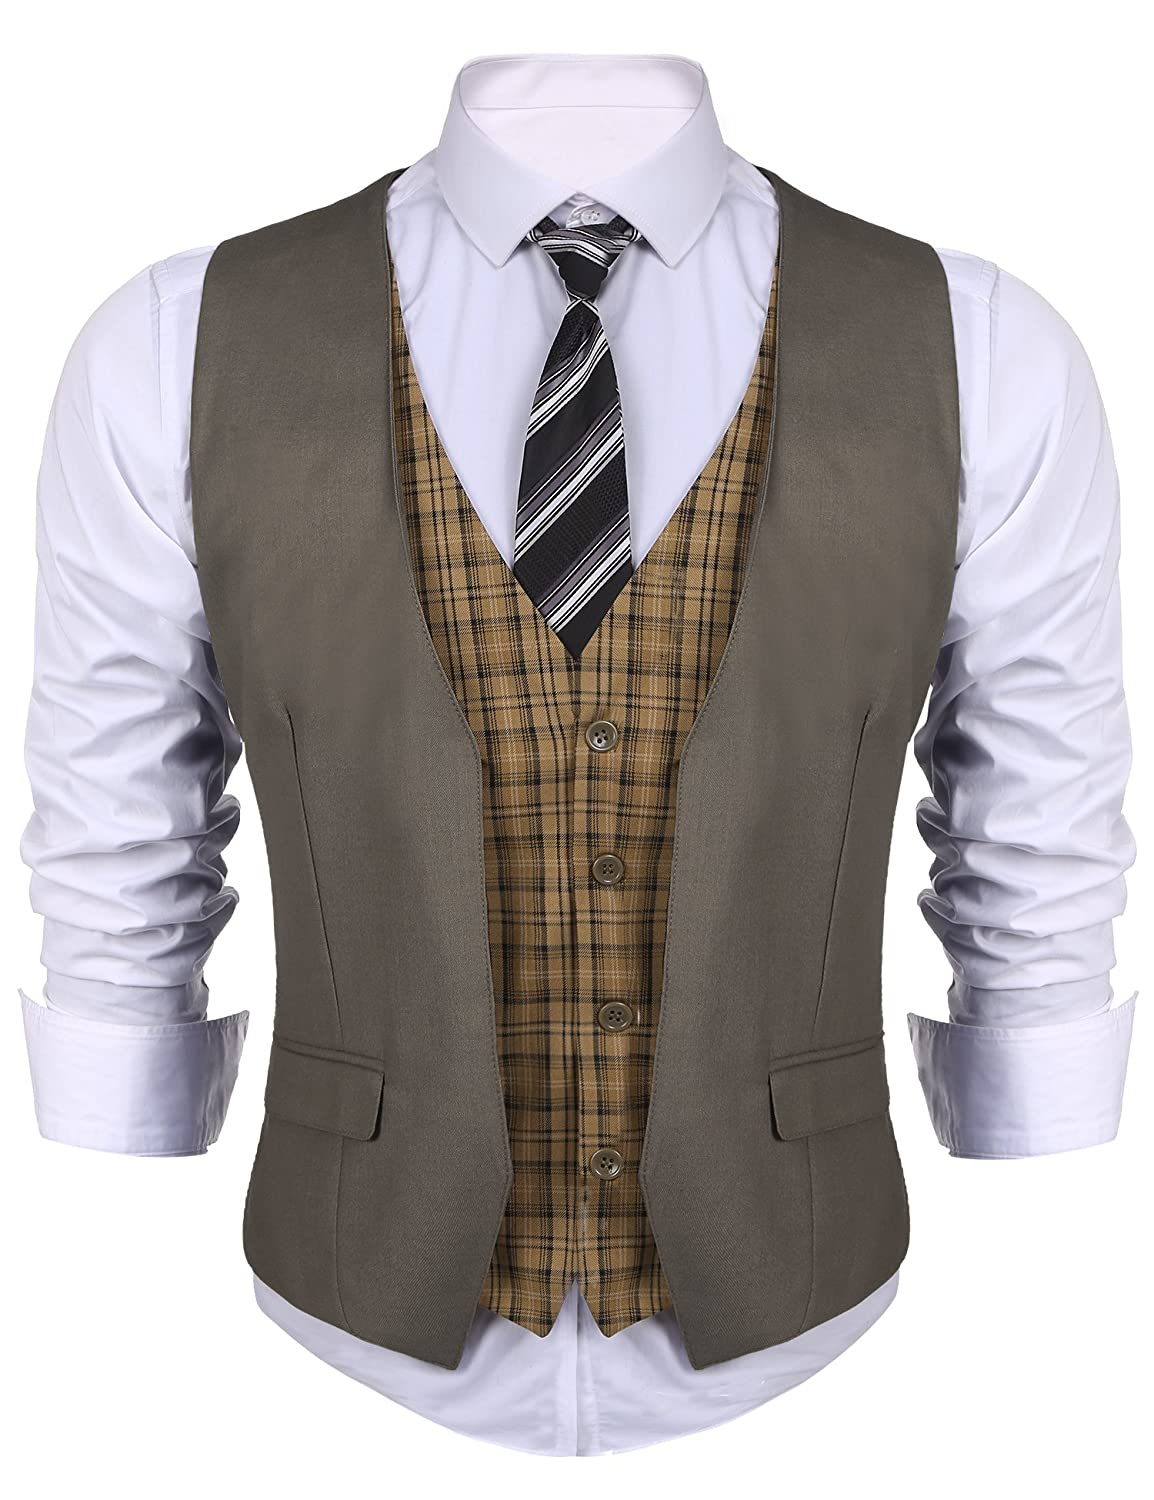 Men's Steampunk Vests, Waistcoats, Corsets COOFANDY Mens Business Suit Vest layered Plaid Dress Waistcoat for Wedding Date Dinner $31.99 AT vintagedancer.com